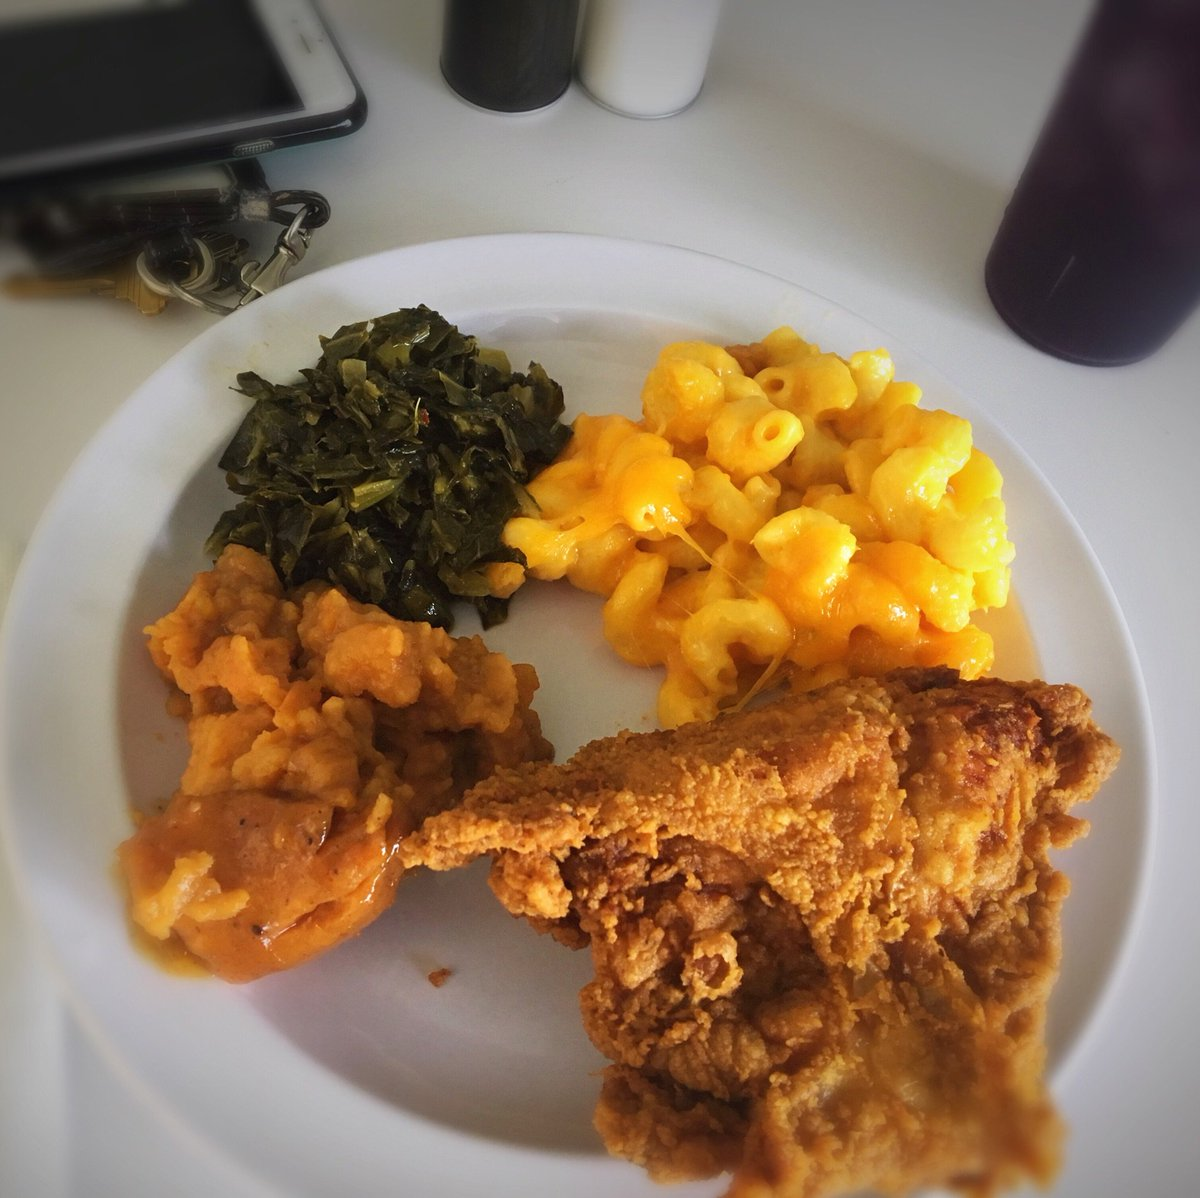 On a lighter note, it was the first #FriedChickenThursday of the new semester. 😊😋💚💛